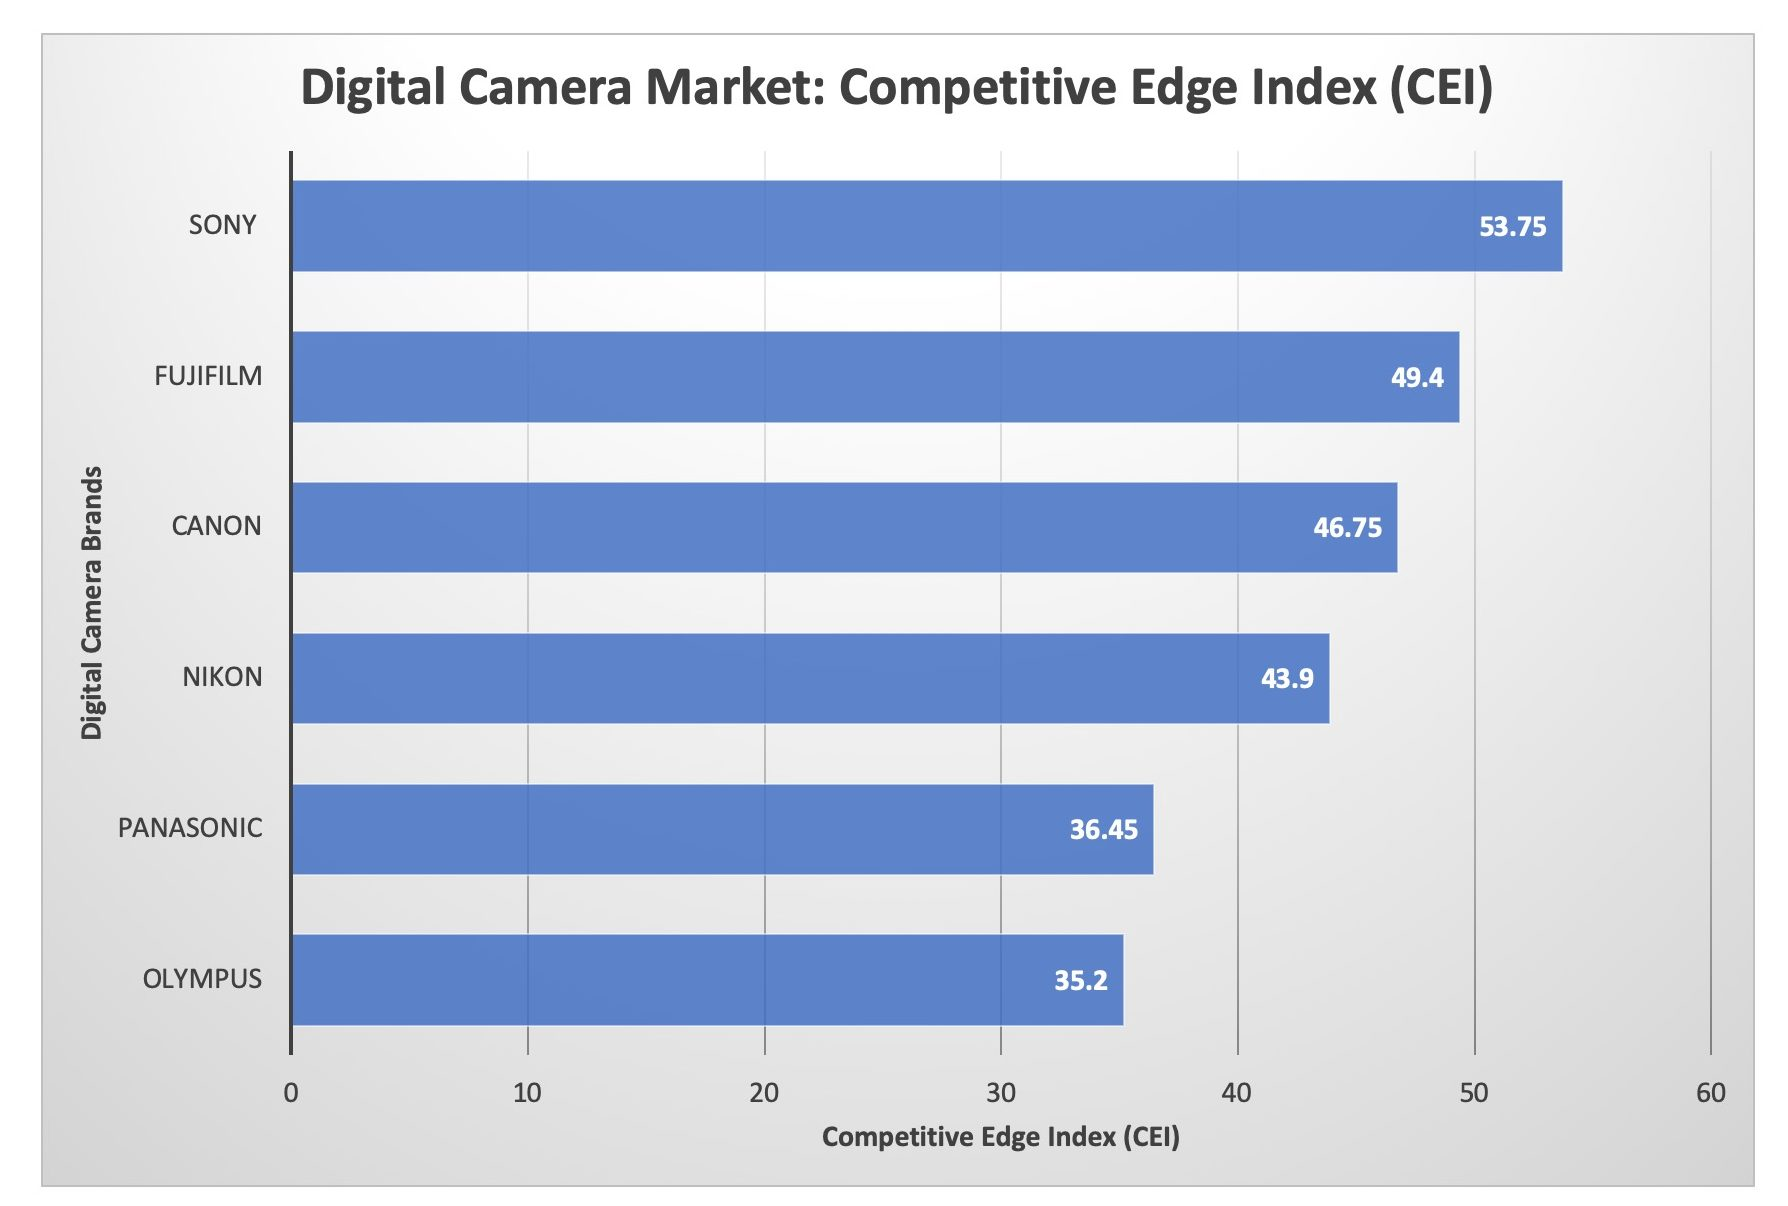 Digital Camera Market: Competitive Edge Index